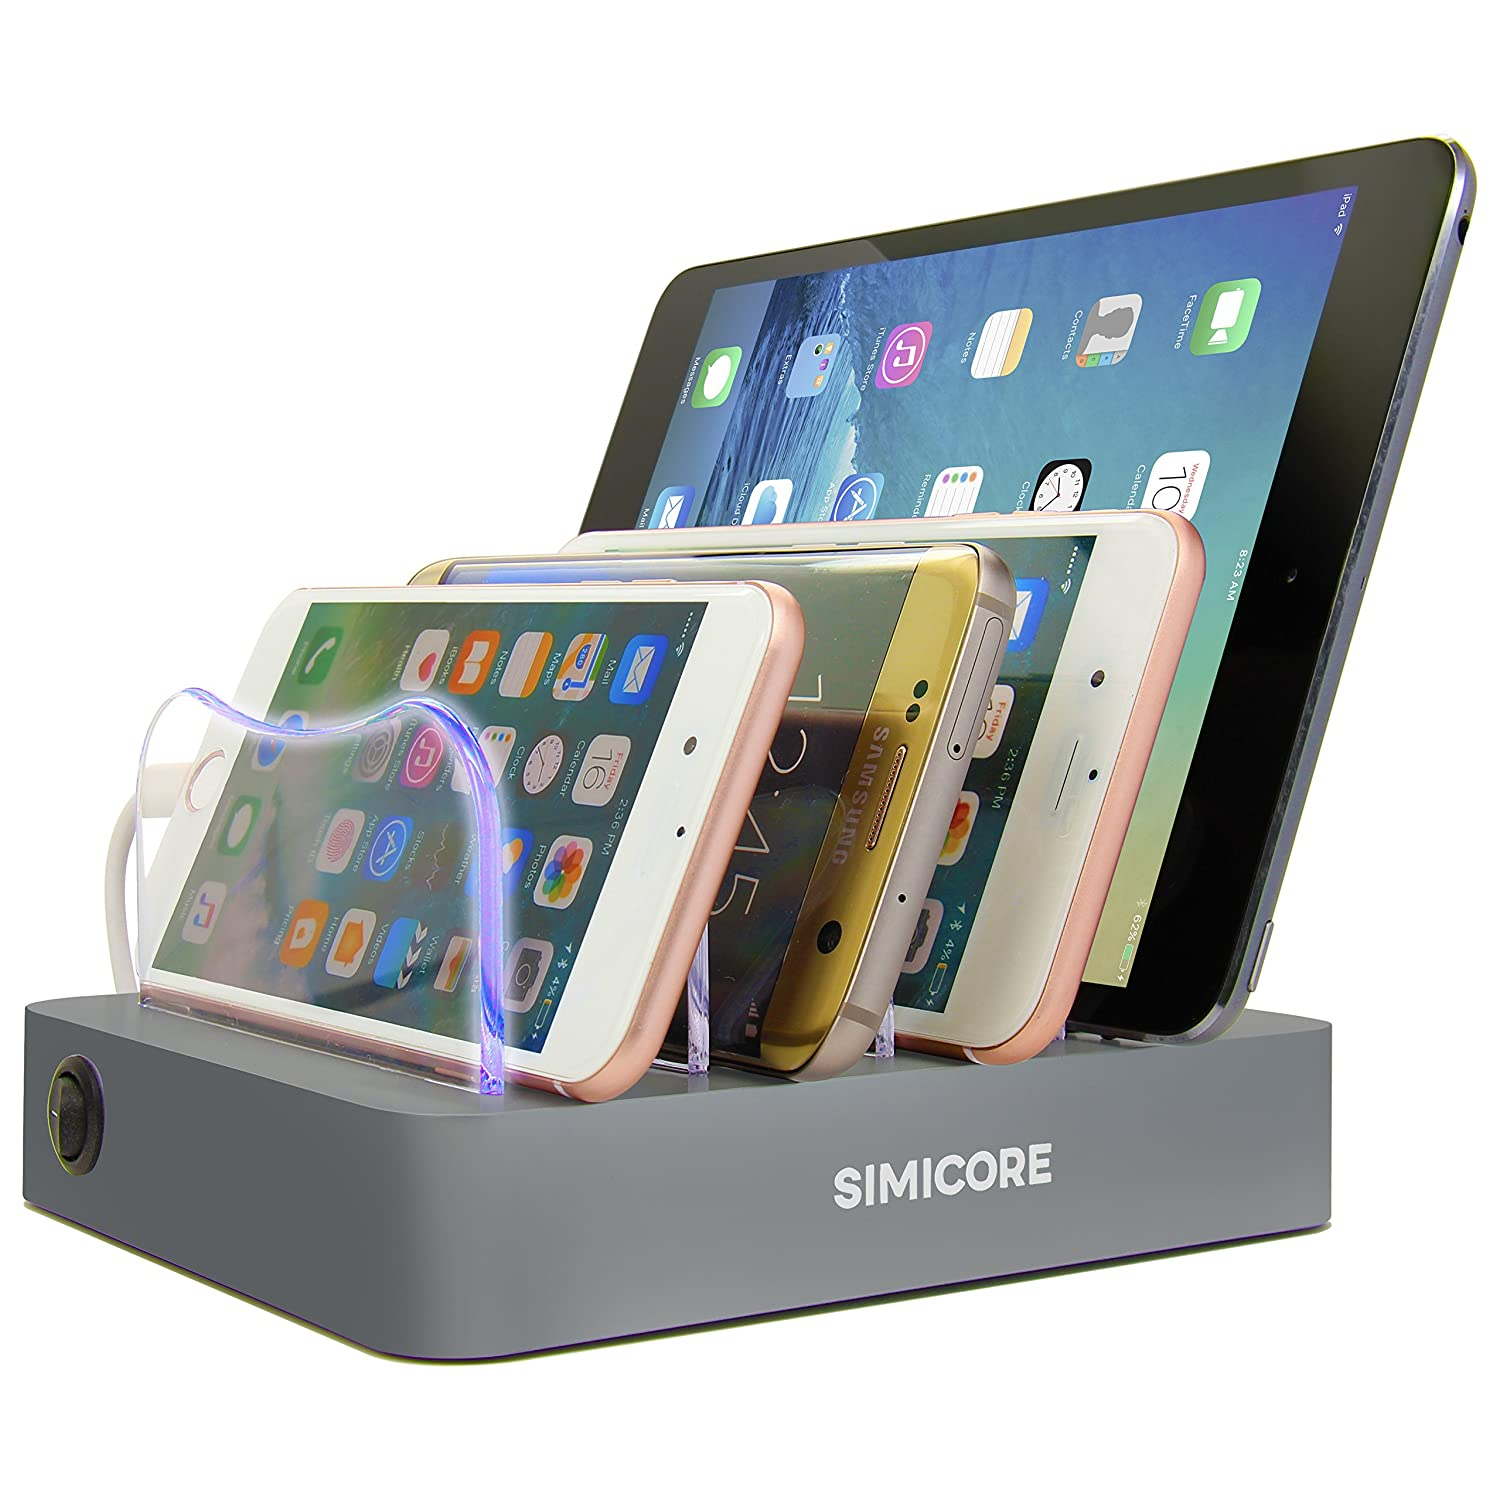 4-Port Compact Multiple USB Charger /& Phone Docking Station with Charging Status Indicator Silver Simicore Smart Charging Station Dock /& Organizer for Smartphones Tablets /& Other Gadgets